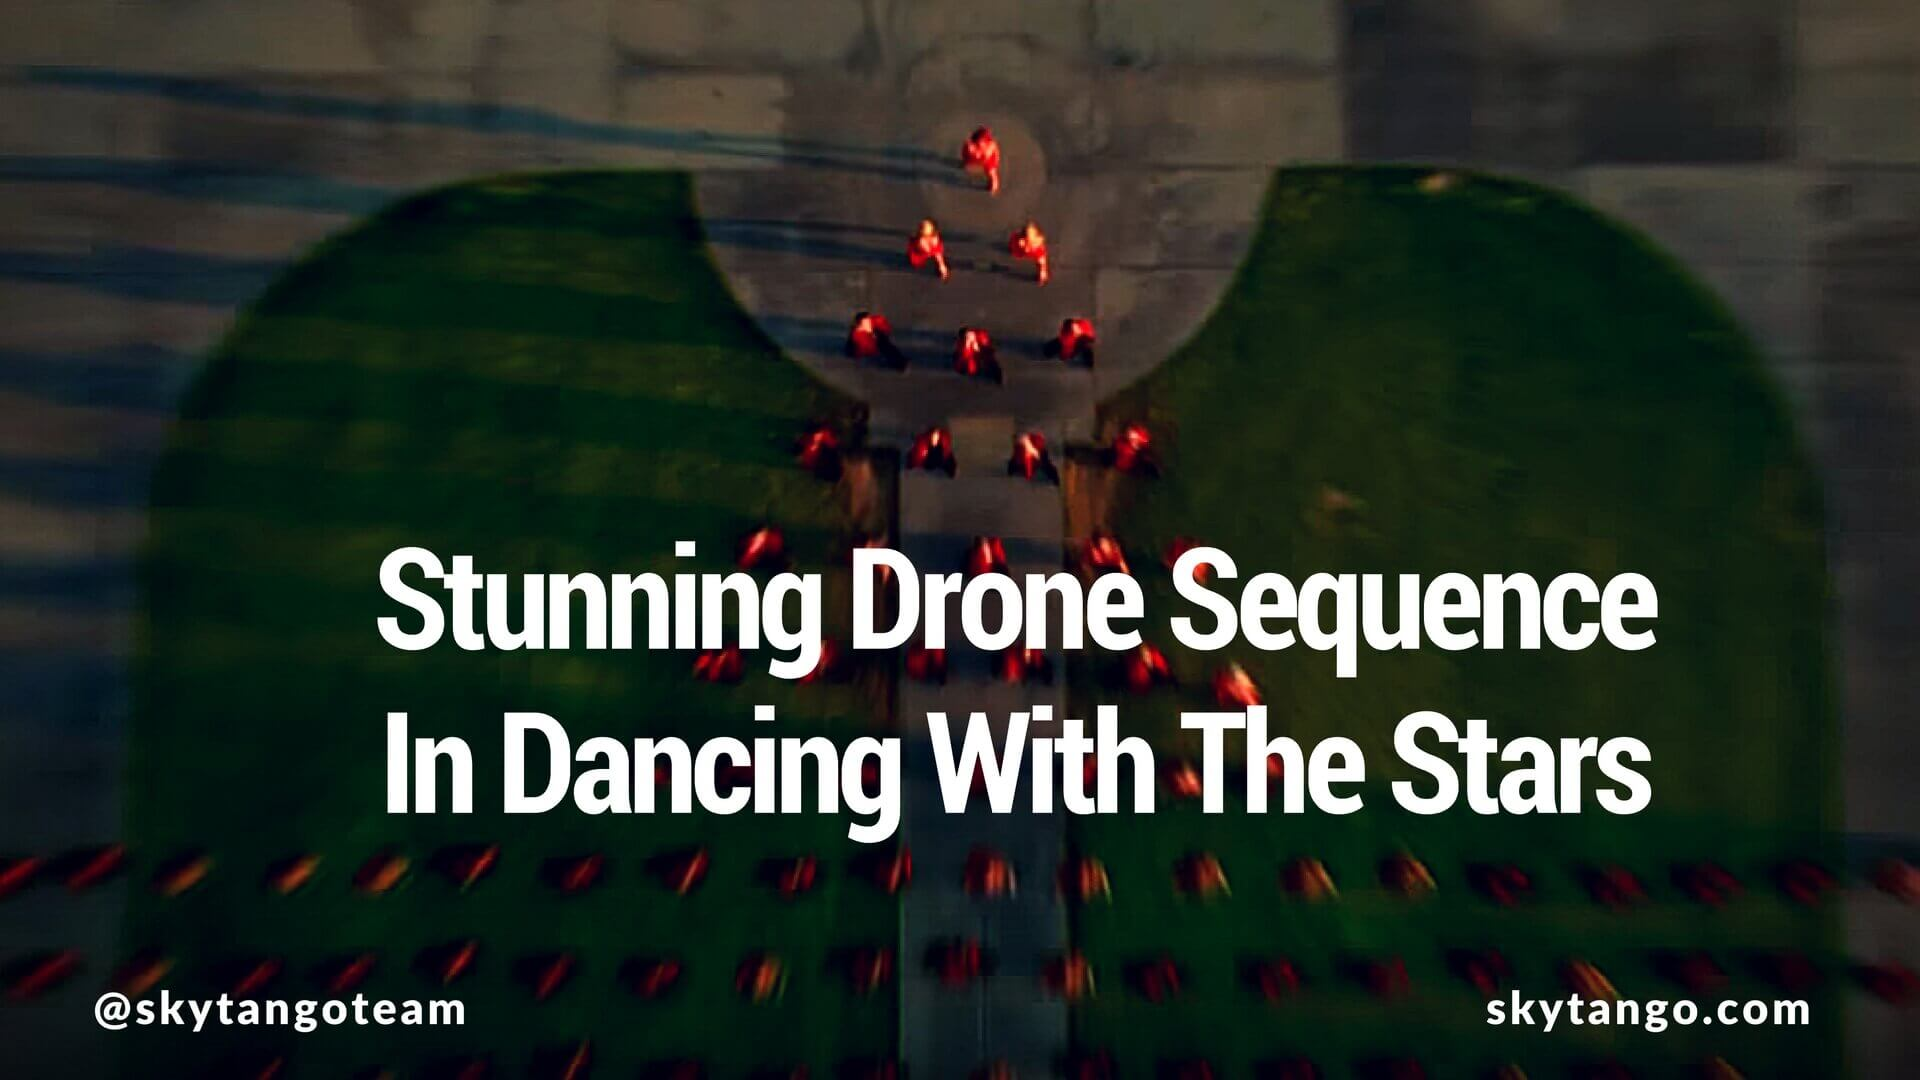 Watch This Stunning Dancing With The Stars Drone Sequence Skytango